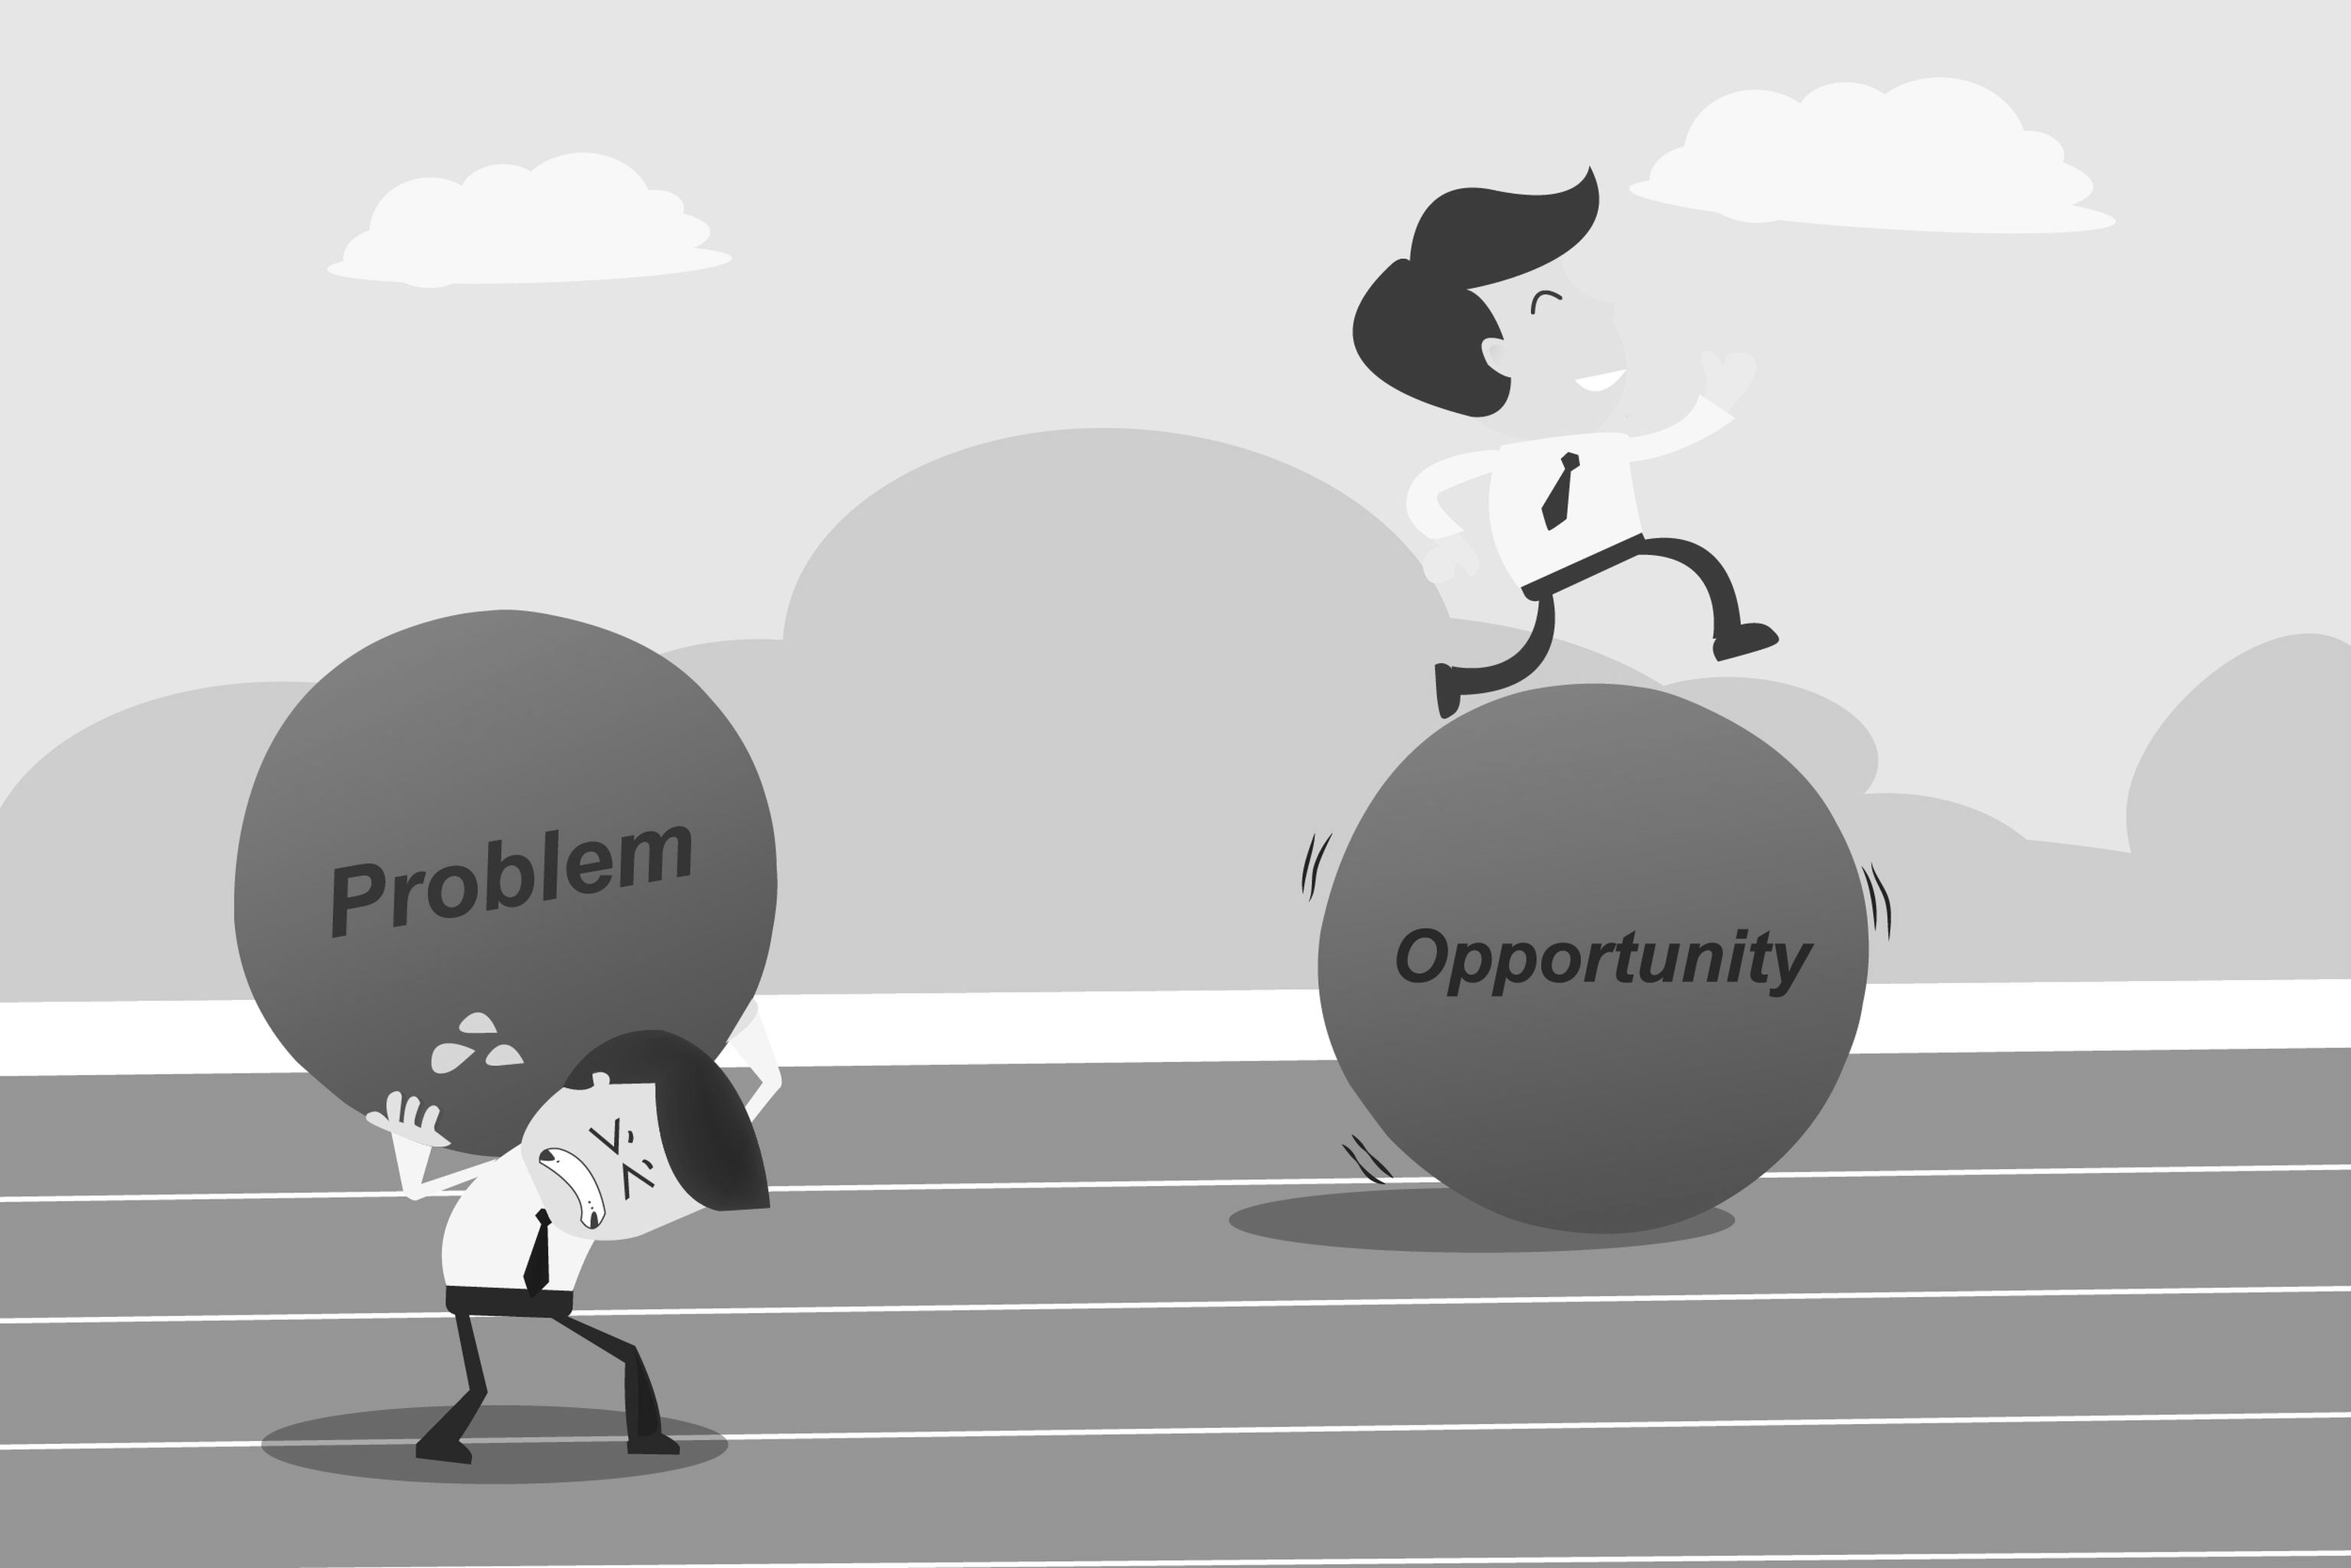 Problems or Opportunity